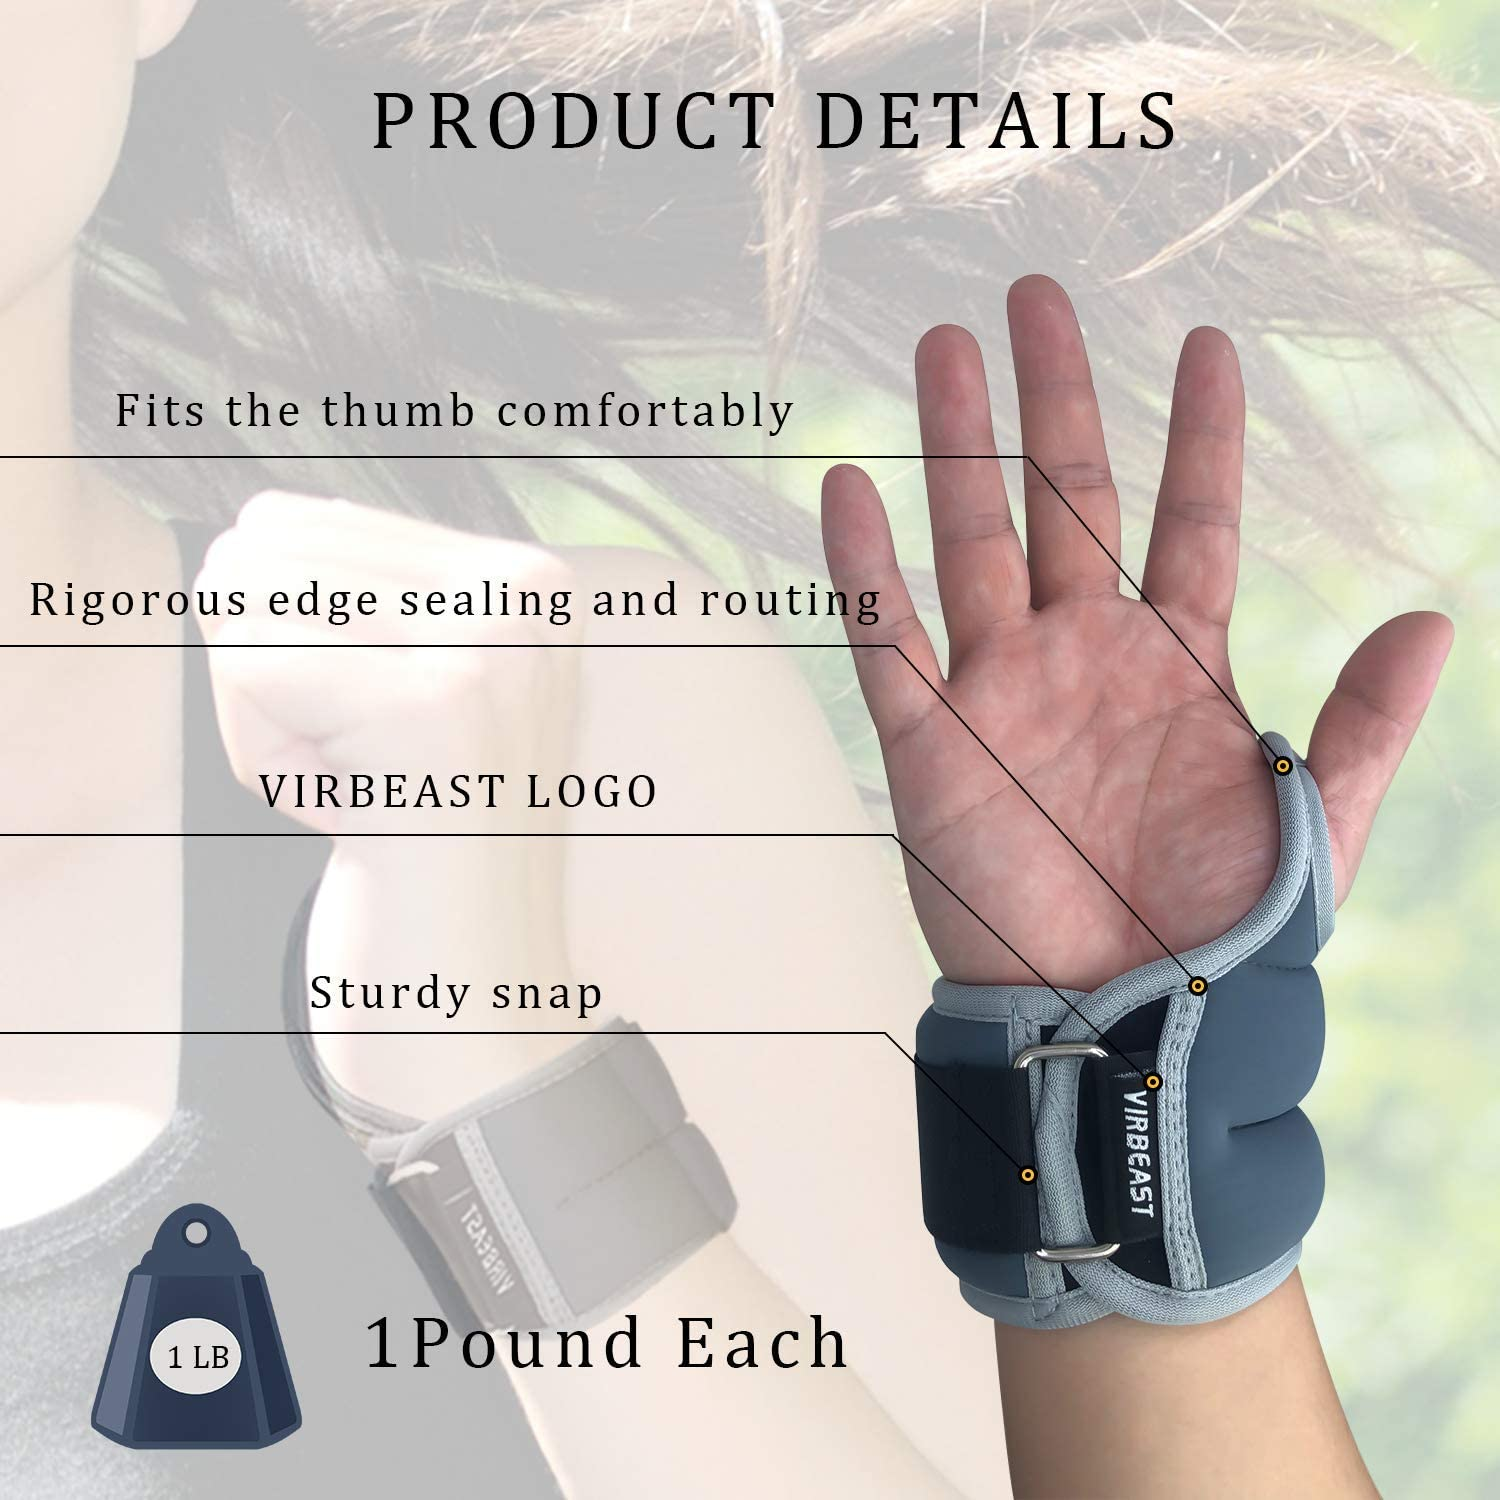 Virbeast Weighted Gloves Pair of Wrist Weights with Hole for Yoga Sport Gym Workout Camping Fitness Running Workout and More Activities 1Pound Each 2 Per Set